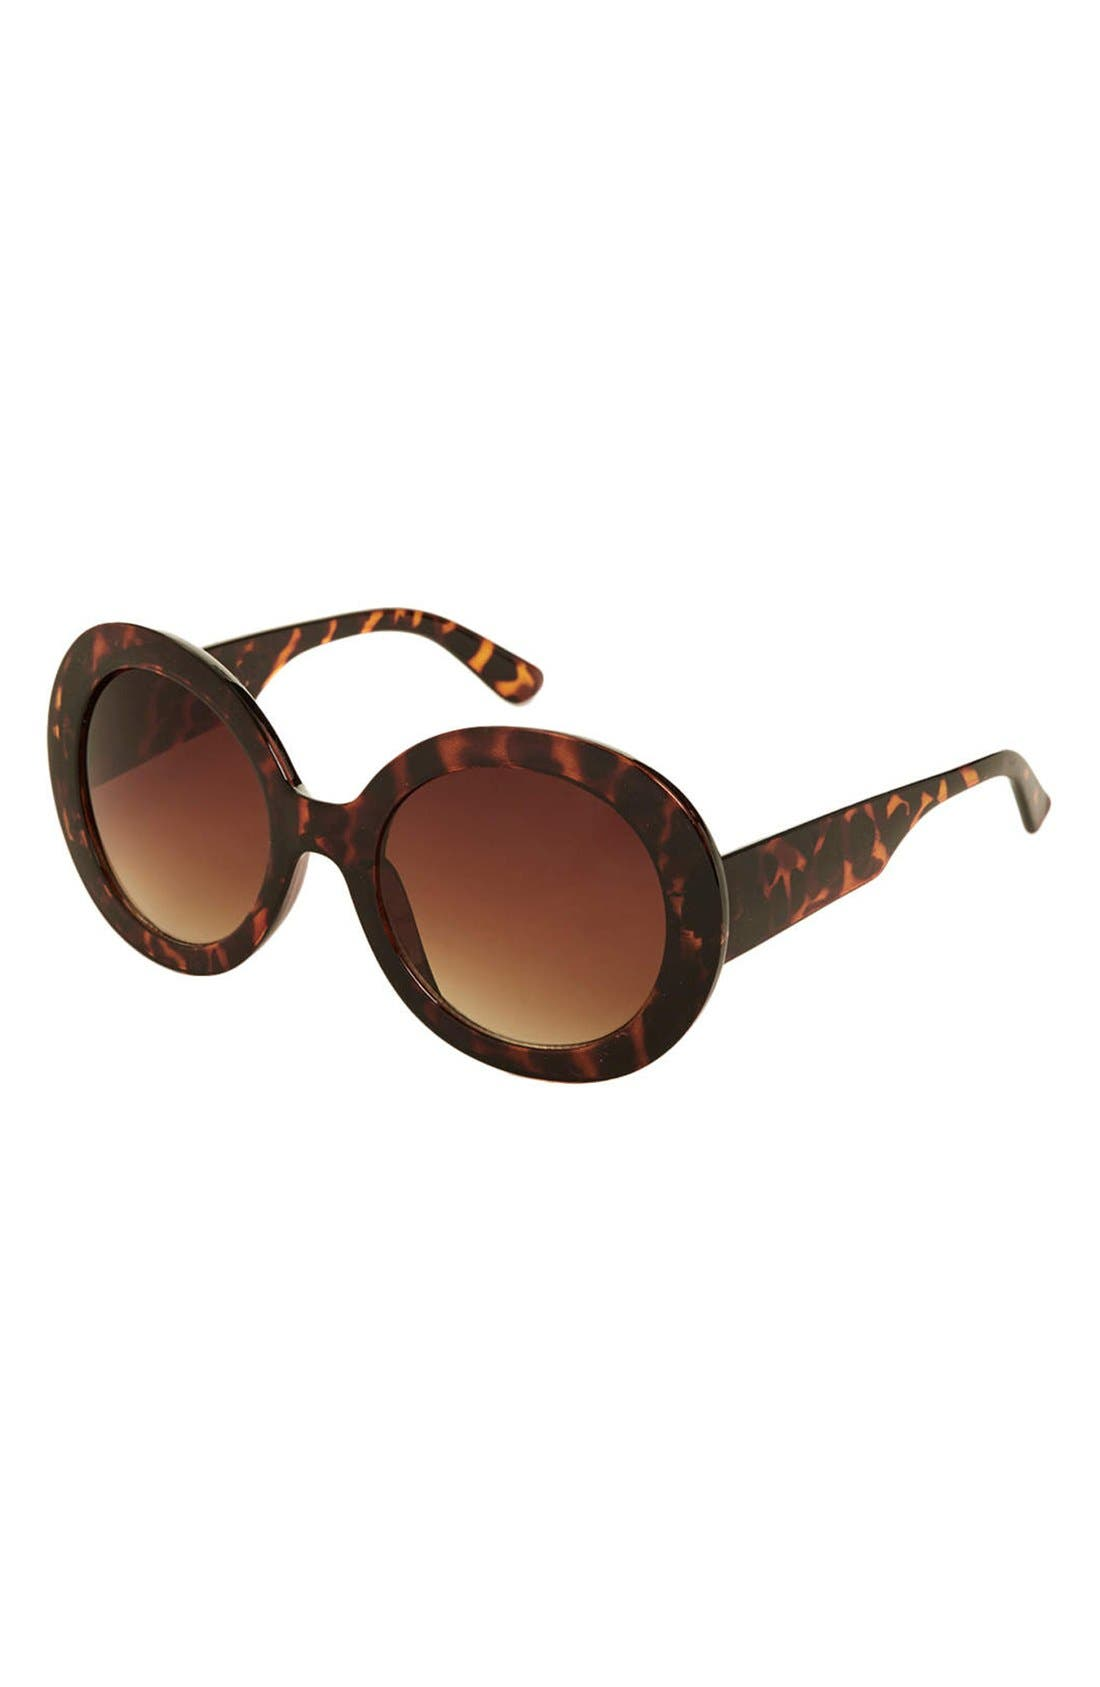 Main Image - Topshop 'Petra' 54mm Oversized Round Sunglasses